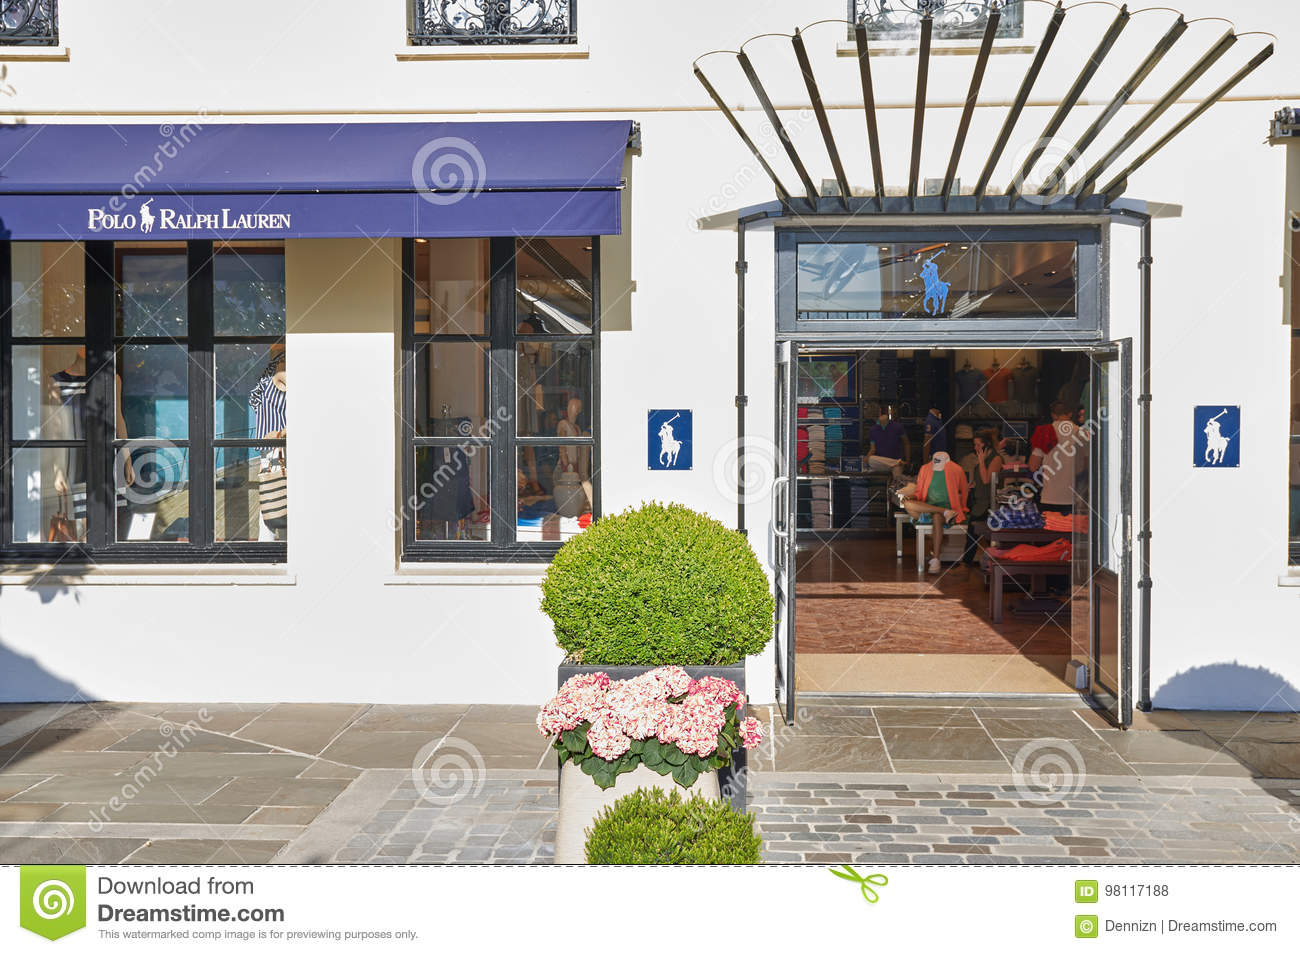 c243f3ad18 Polo Ralph Lauren Boutique In La Vallee Village. Editorial Stock ...